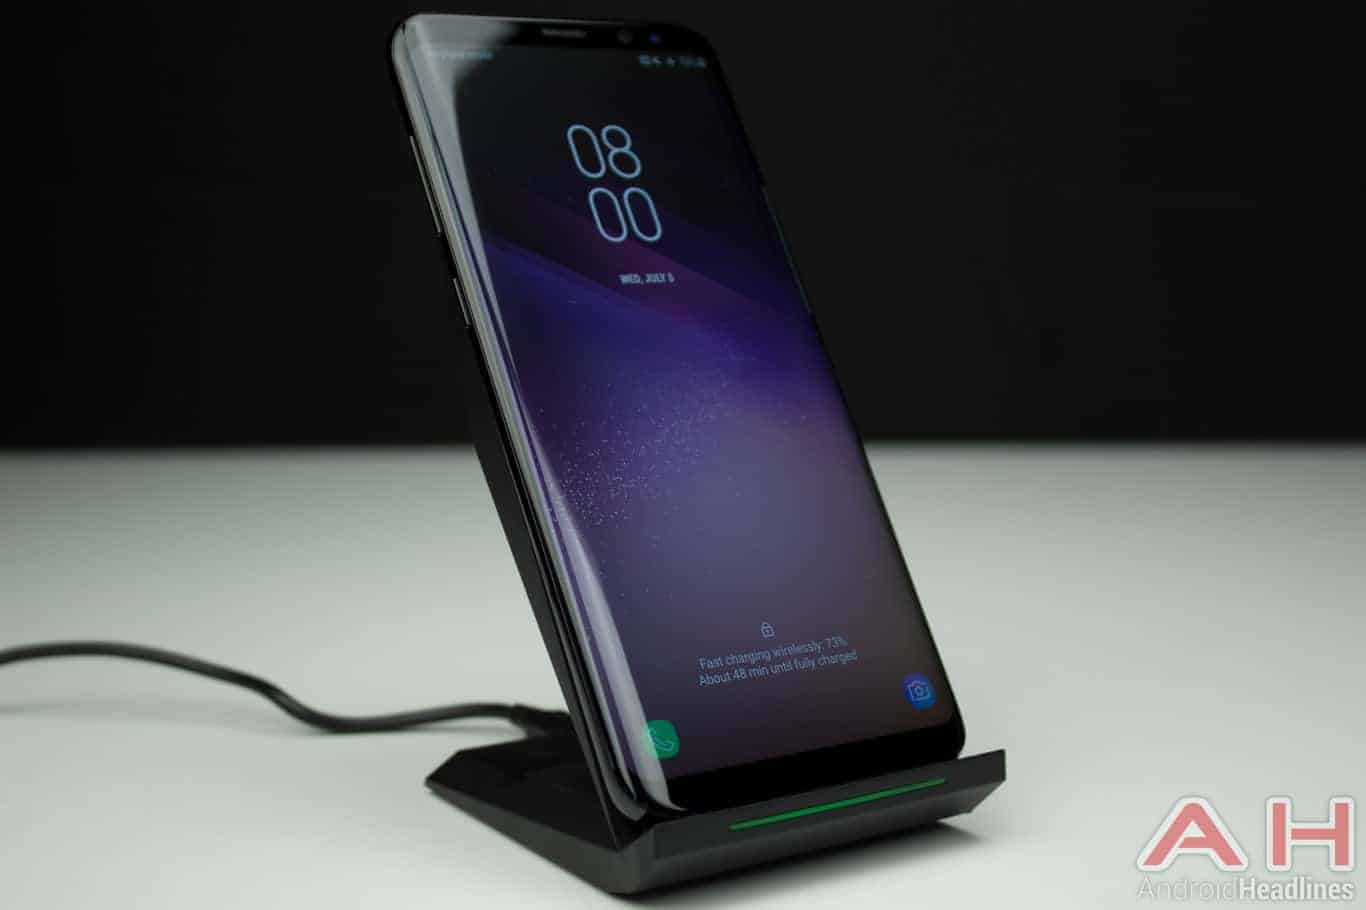 Samsung S8 Wireless Charger Review Wire Center Sky Snp P051 Triple Output Power Supply New Hybrid Further Cord Reviews And Deals Galaxy Usb Type C Accessories By Choetech Rh Androidheadlines Com